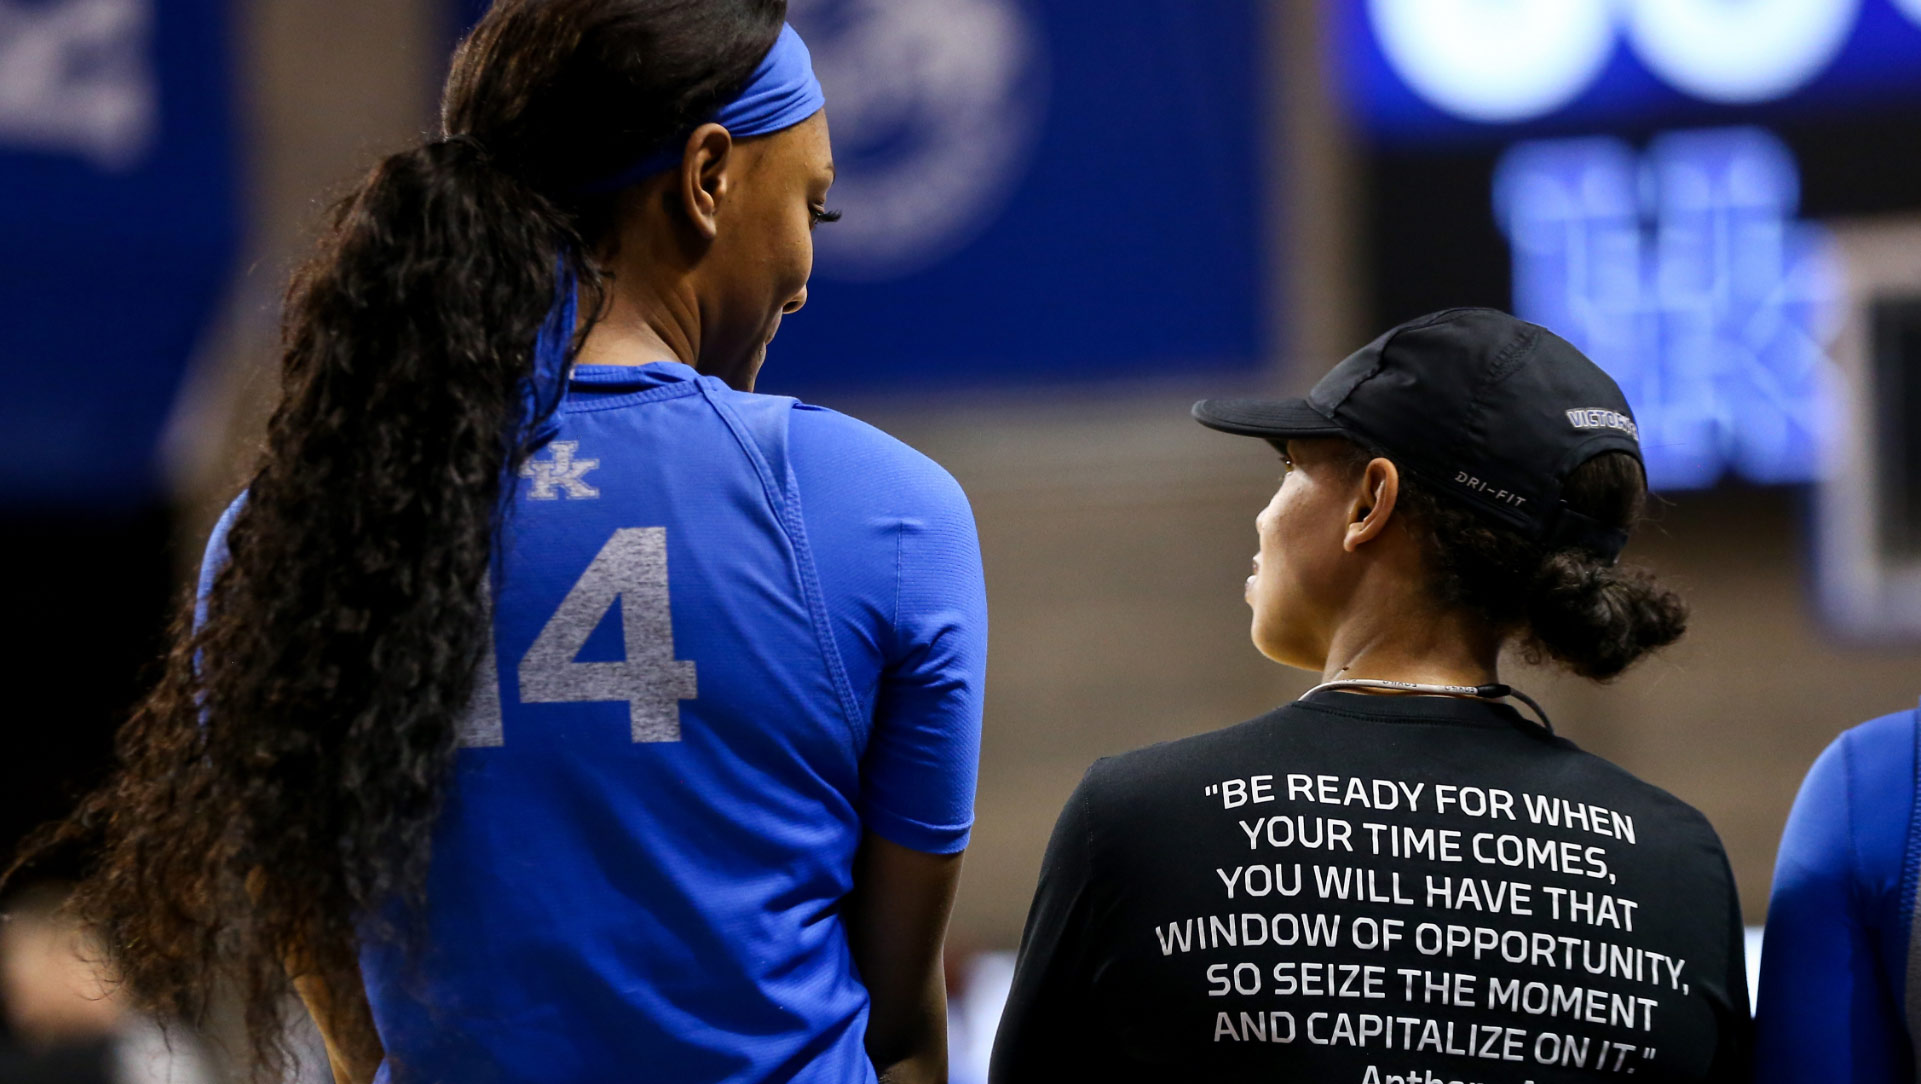 """A photo of Amber and a player with their backs to the camera, talking and smiling before a game. Amber's shirt says """"Be ready for when your time comes. You will have that window of opportunity."""""""